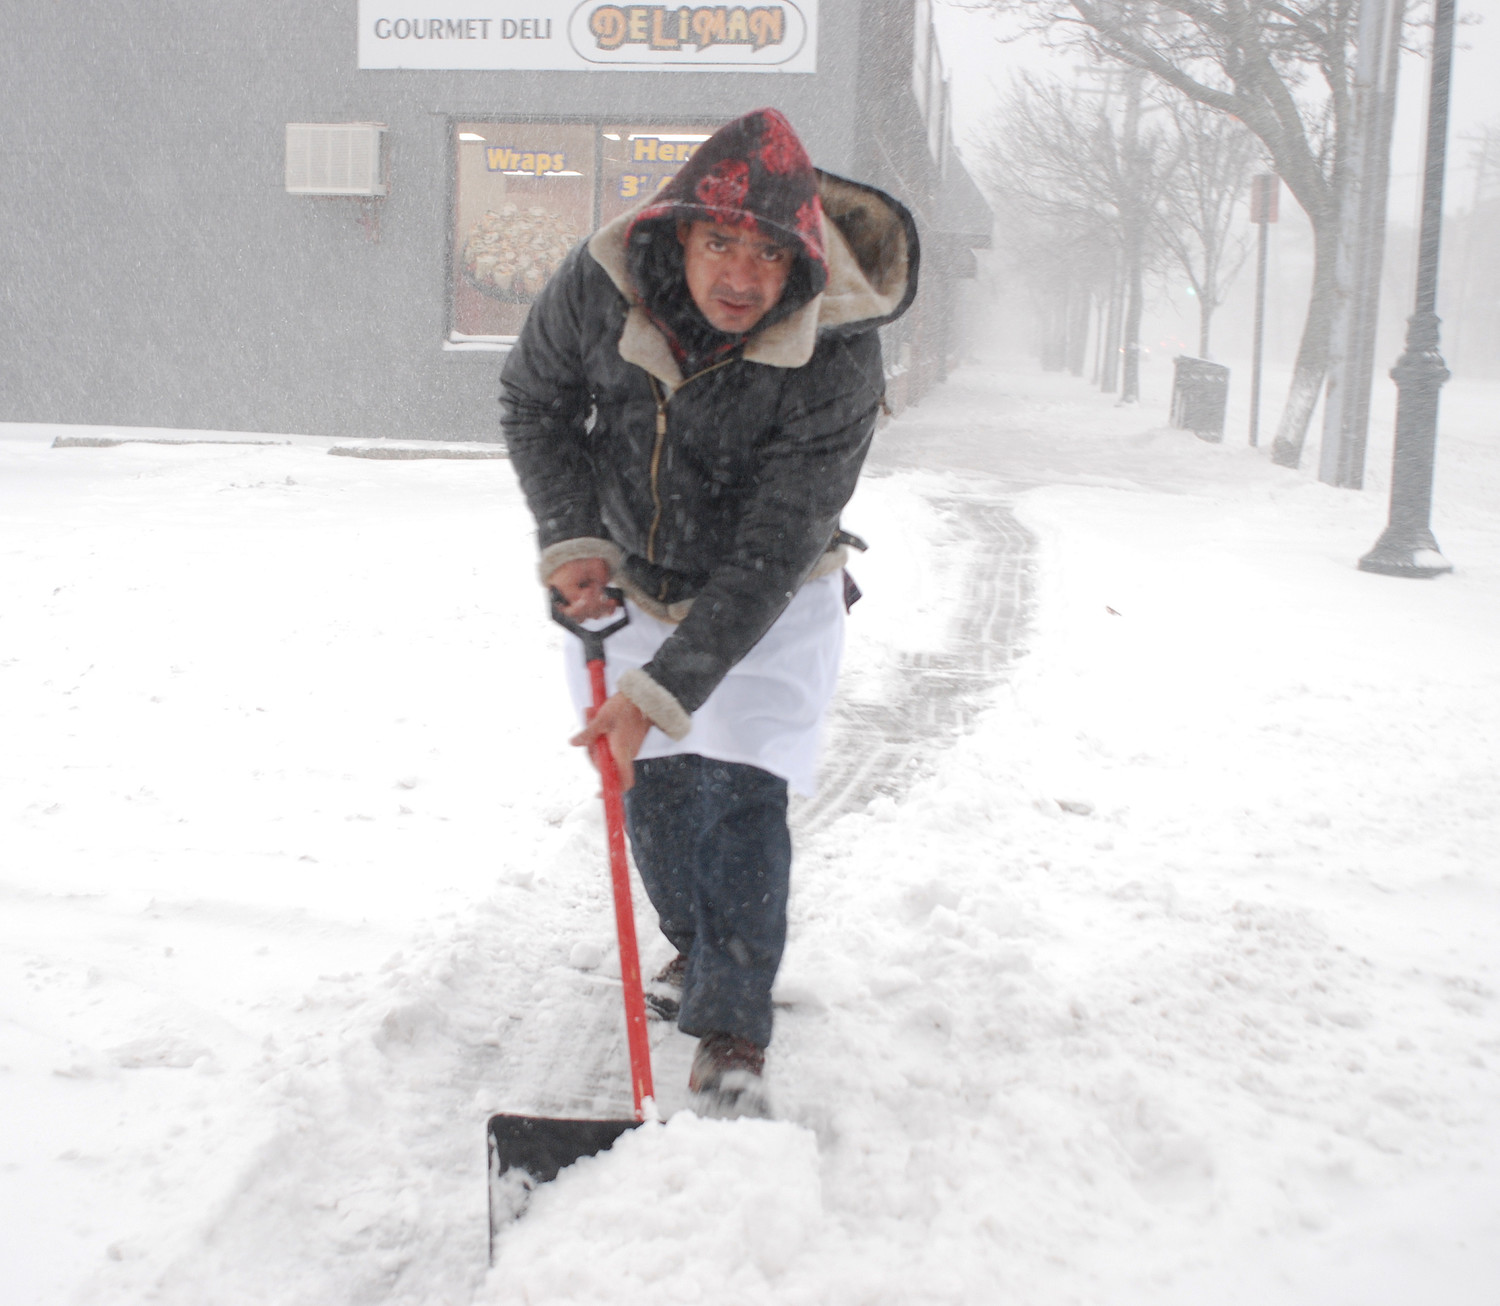 A worker, who did not wish to be identified, cleaned up a sidewalk in downtown Merrick around 8 a.m. Thursday.